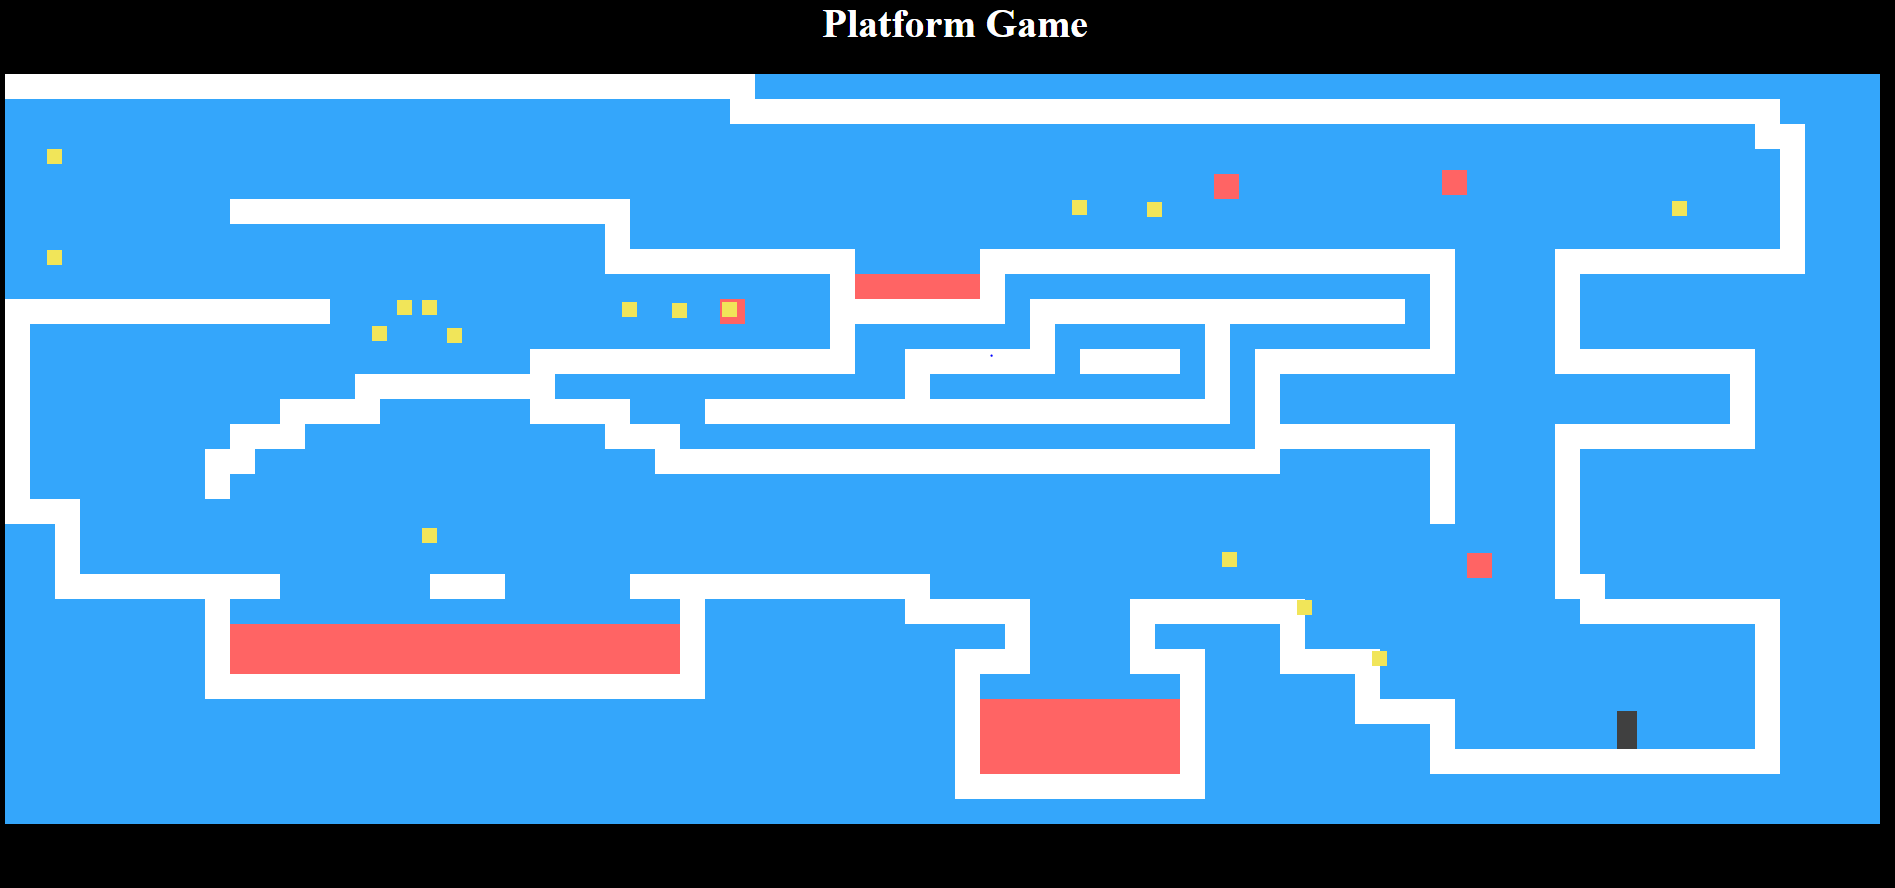 image of platform game